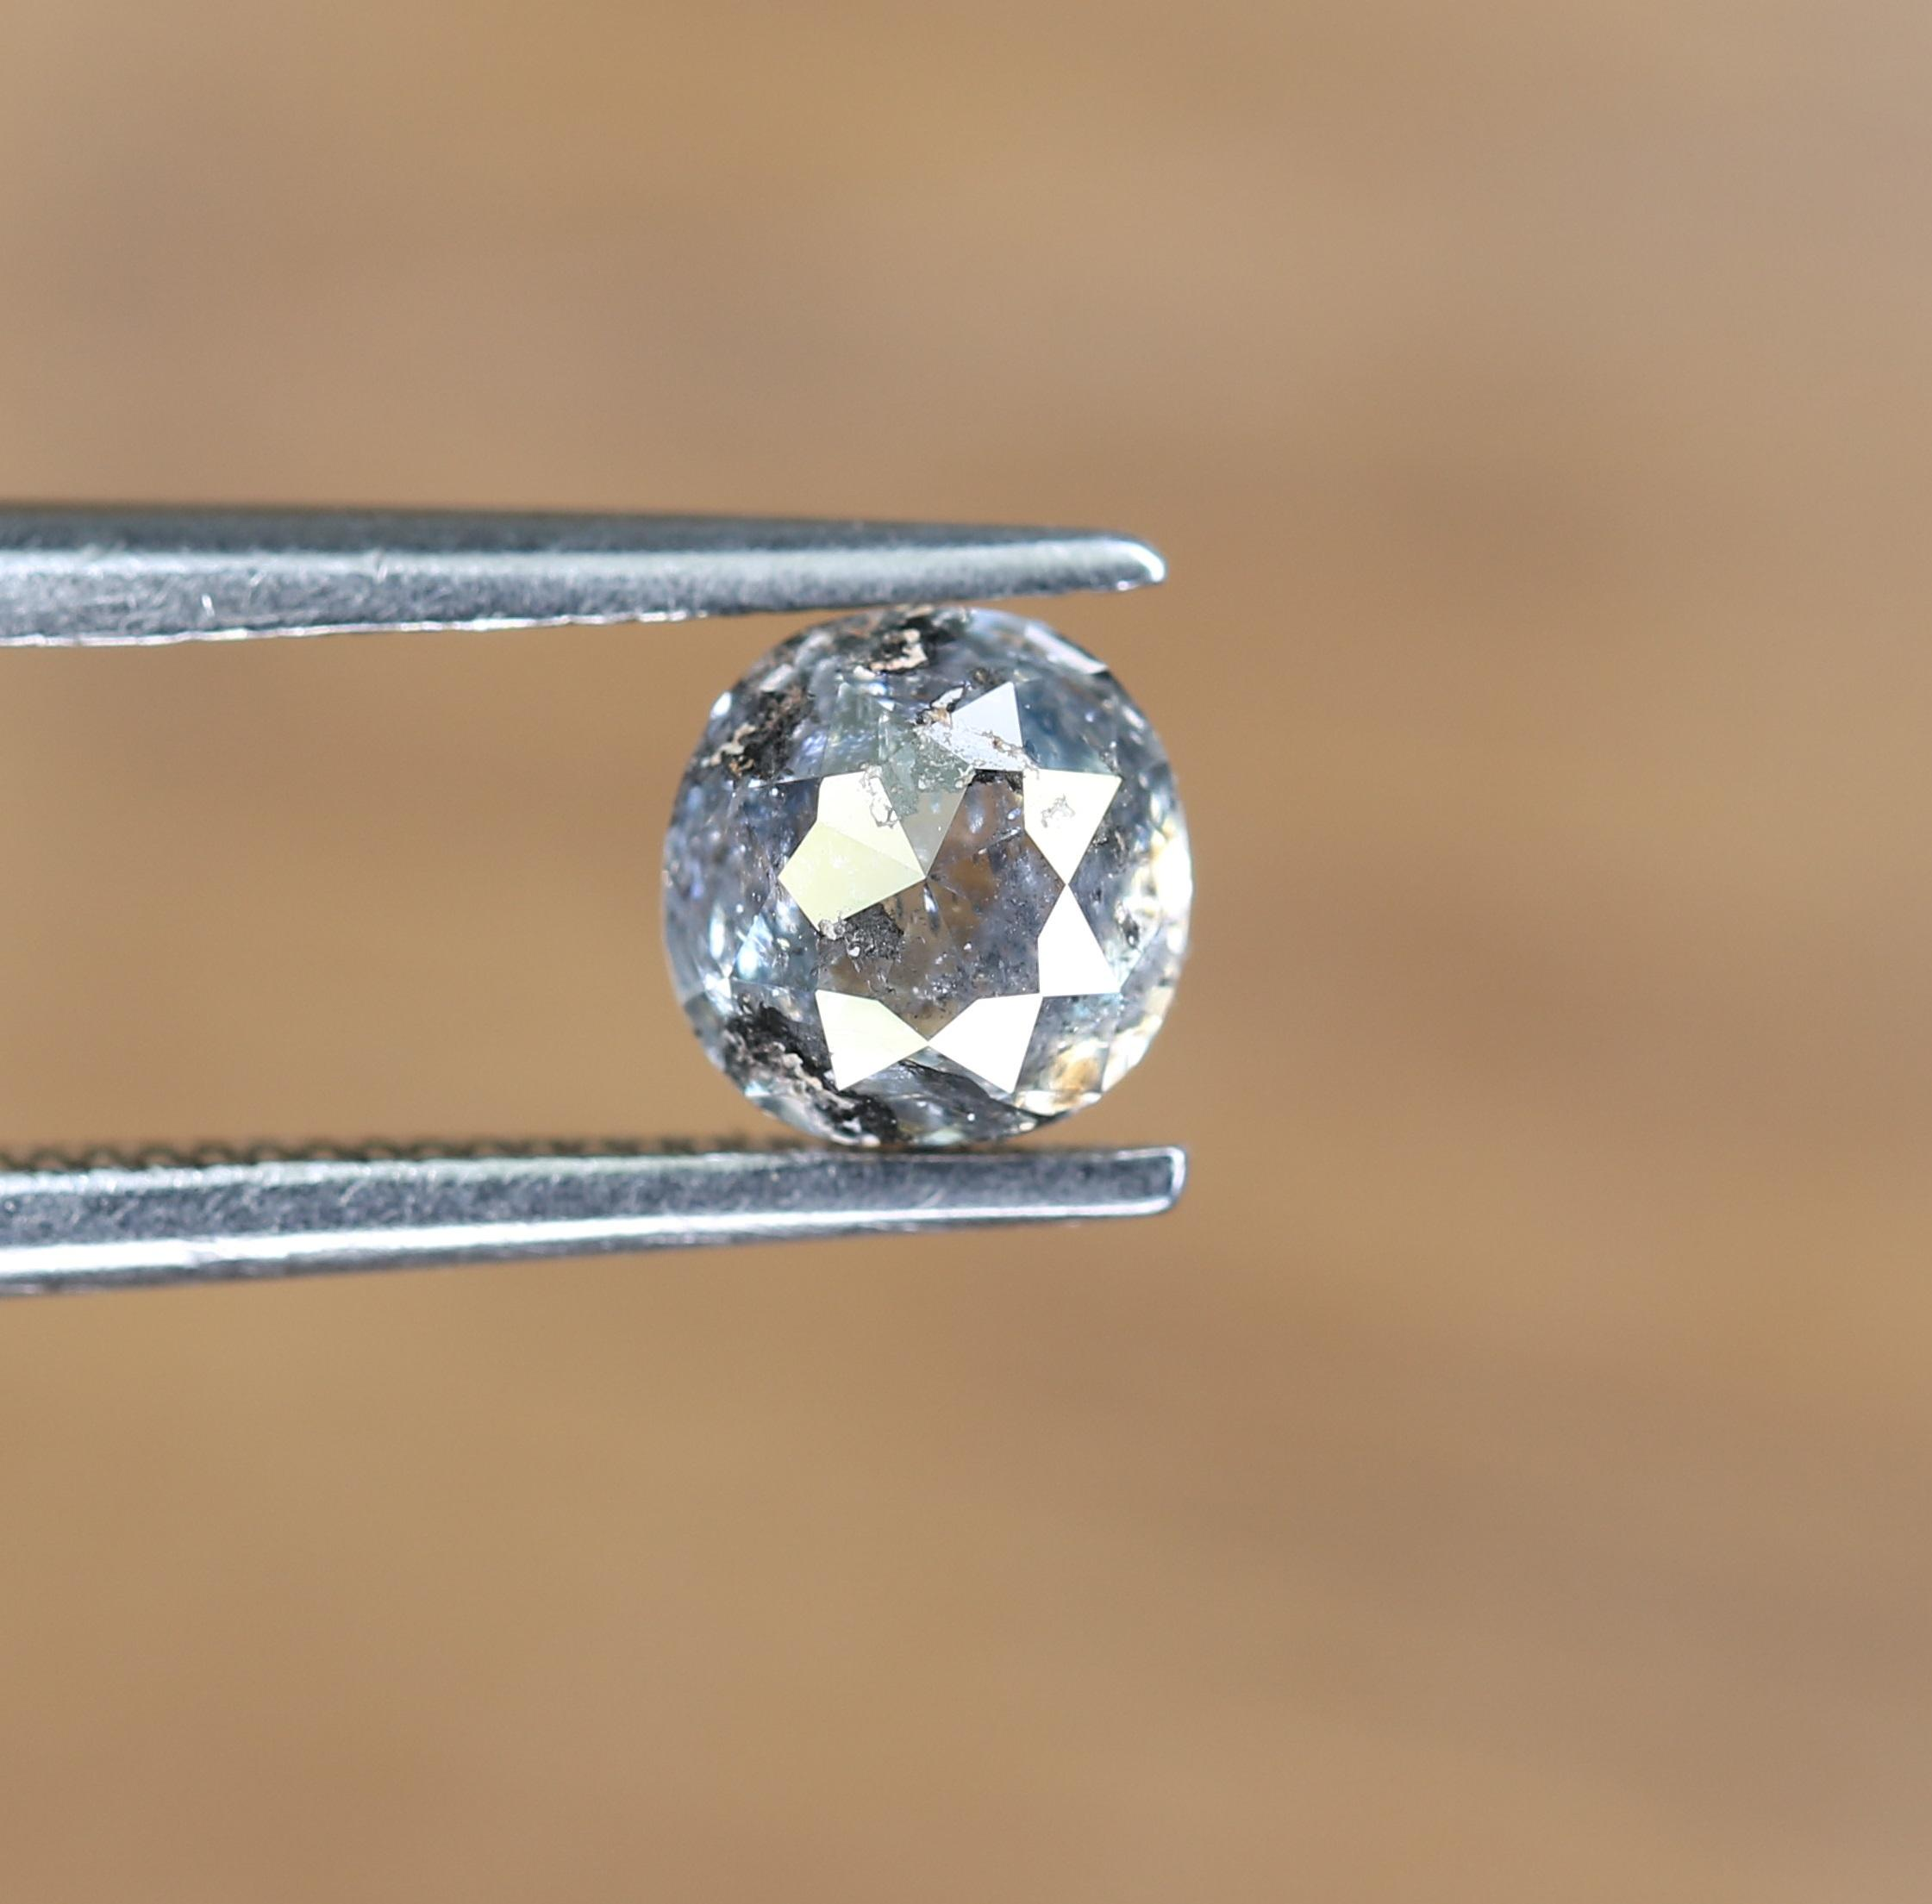 0.82 CT NATURAL SALT AND PEPPER CUSHION CUT LOOSE REAL DIAMOND BY JAYKRISHNA DIAMOND